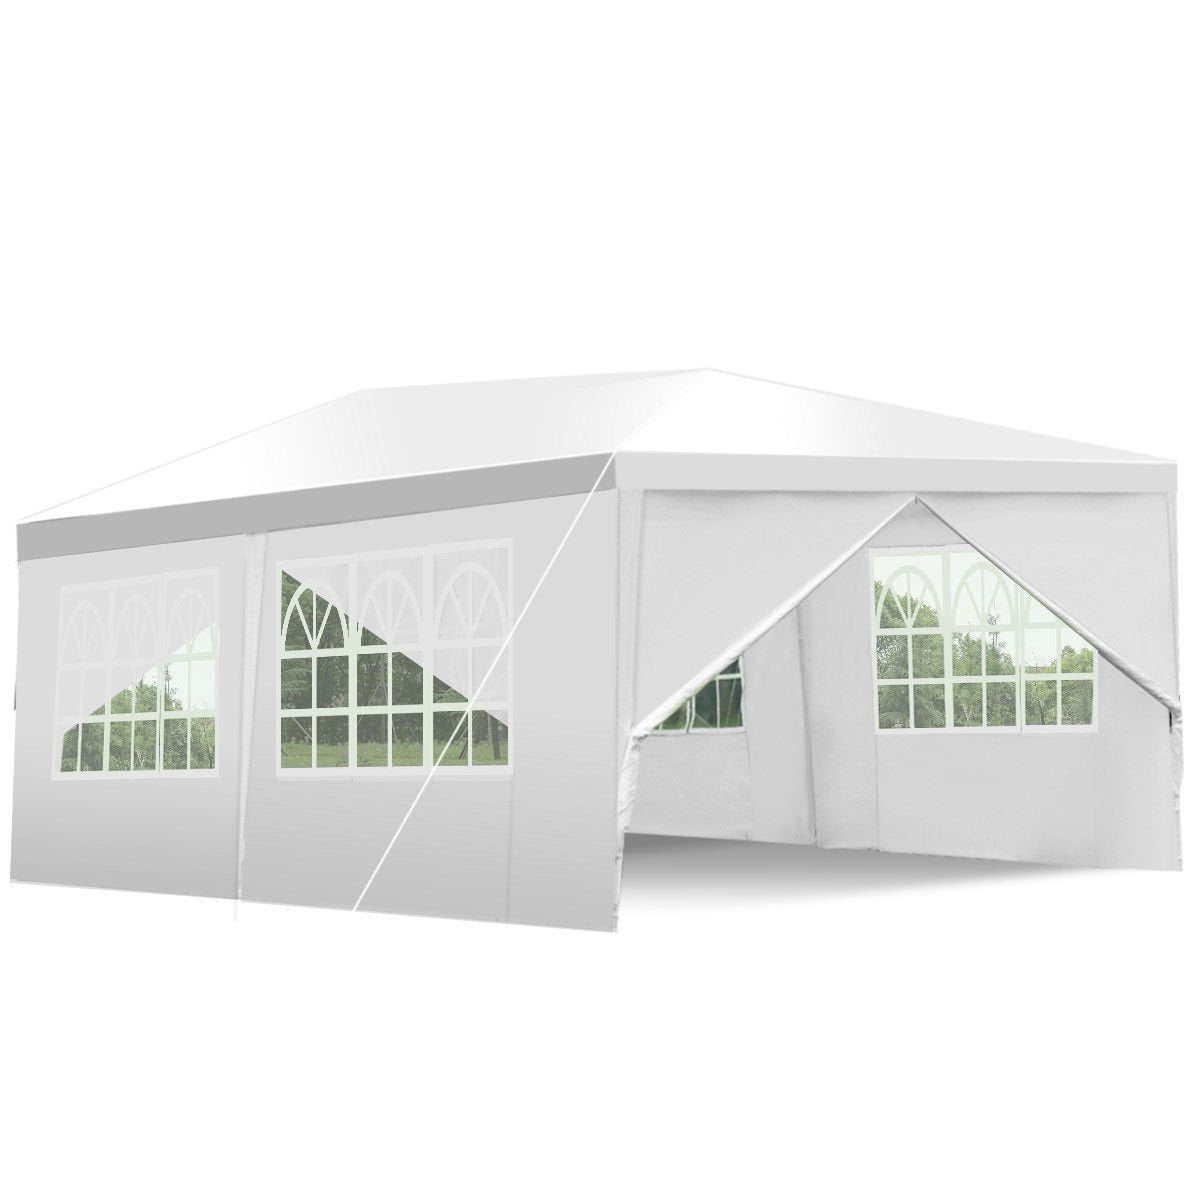 10ft x 10ft Heavy Duty Party Wedding Canopy Tent Gazebo White